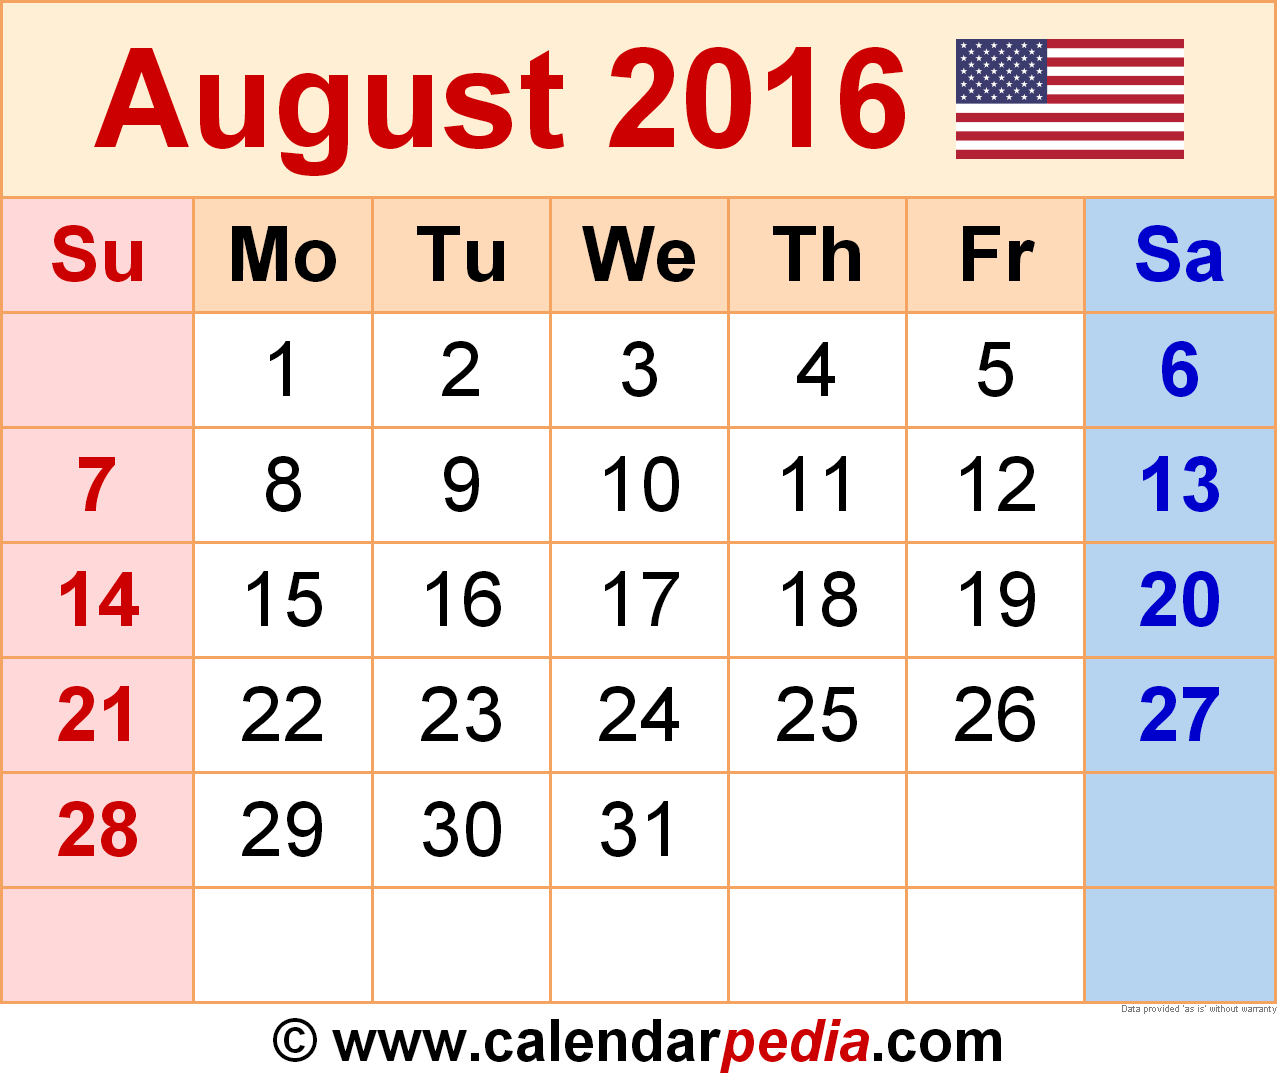 August 2016  Calendar Templates For Word, Excel And Pdf within July August 2016 Calendar